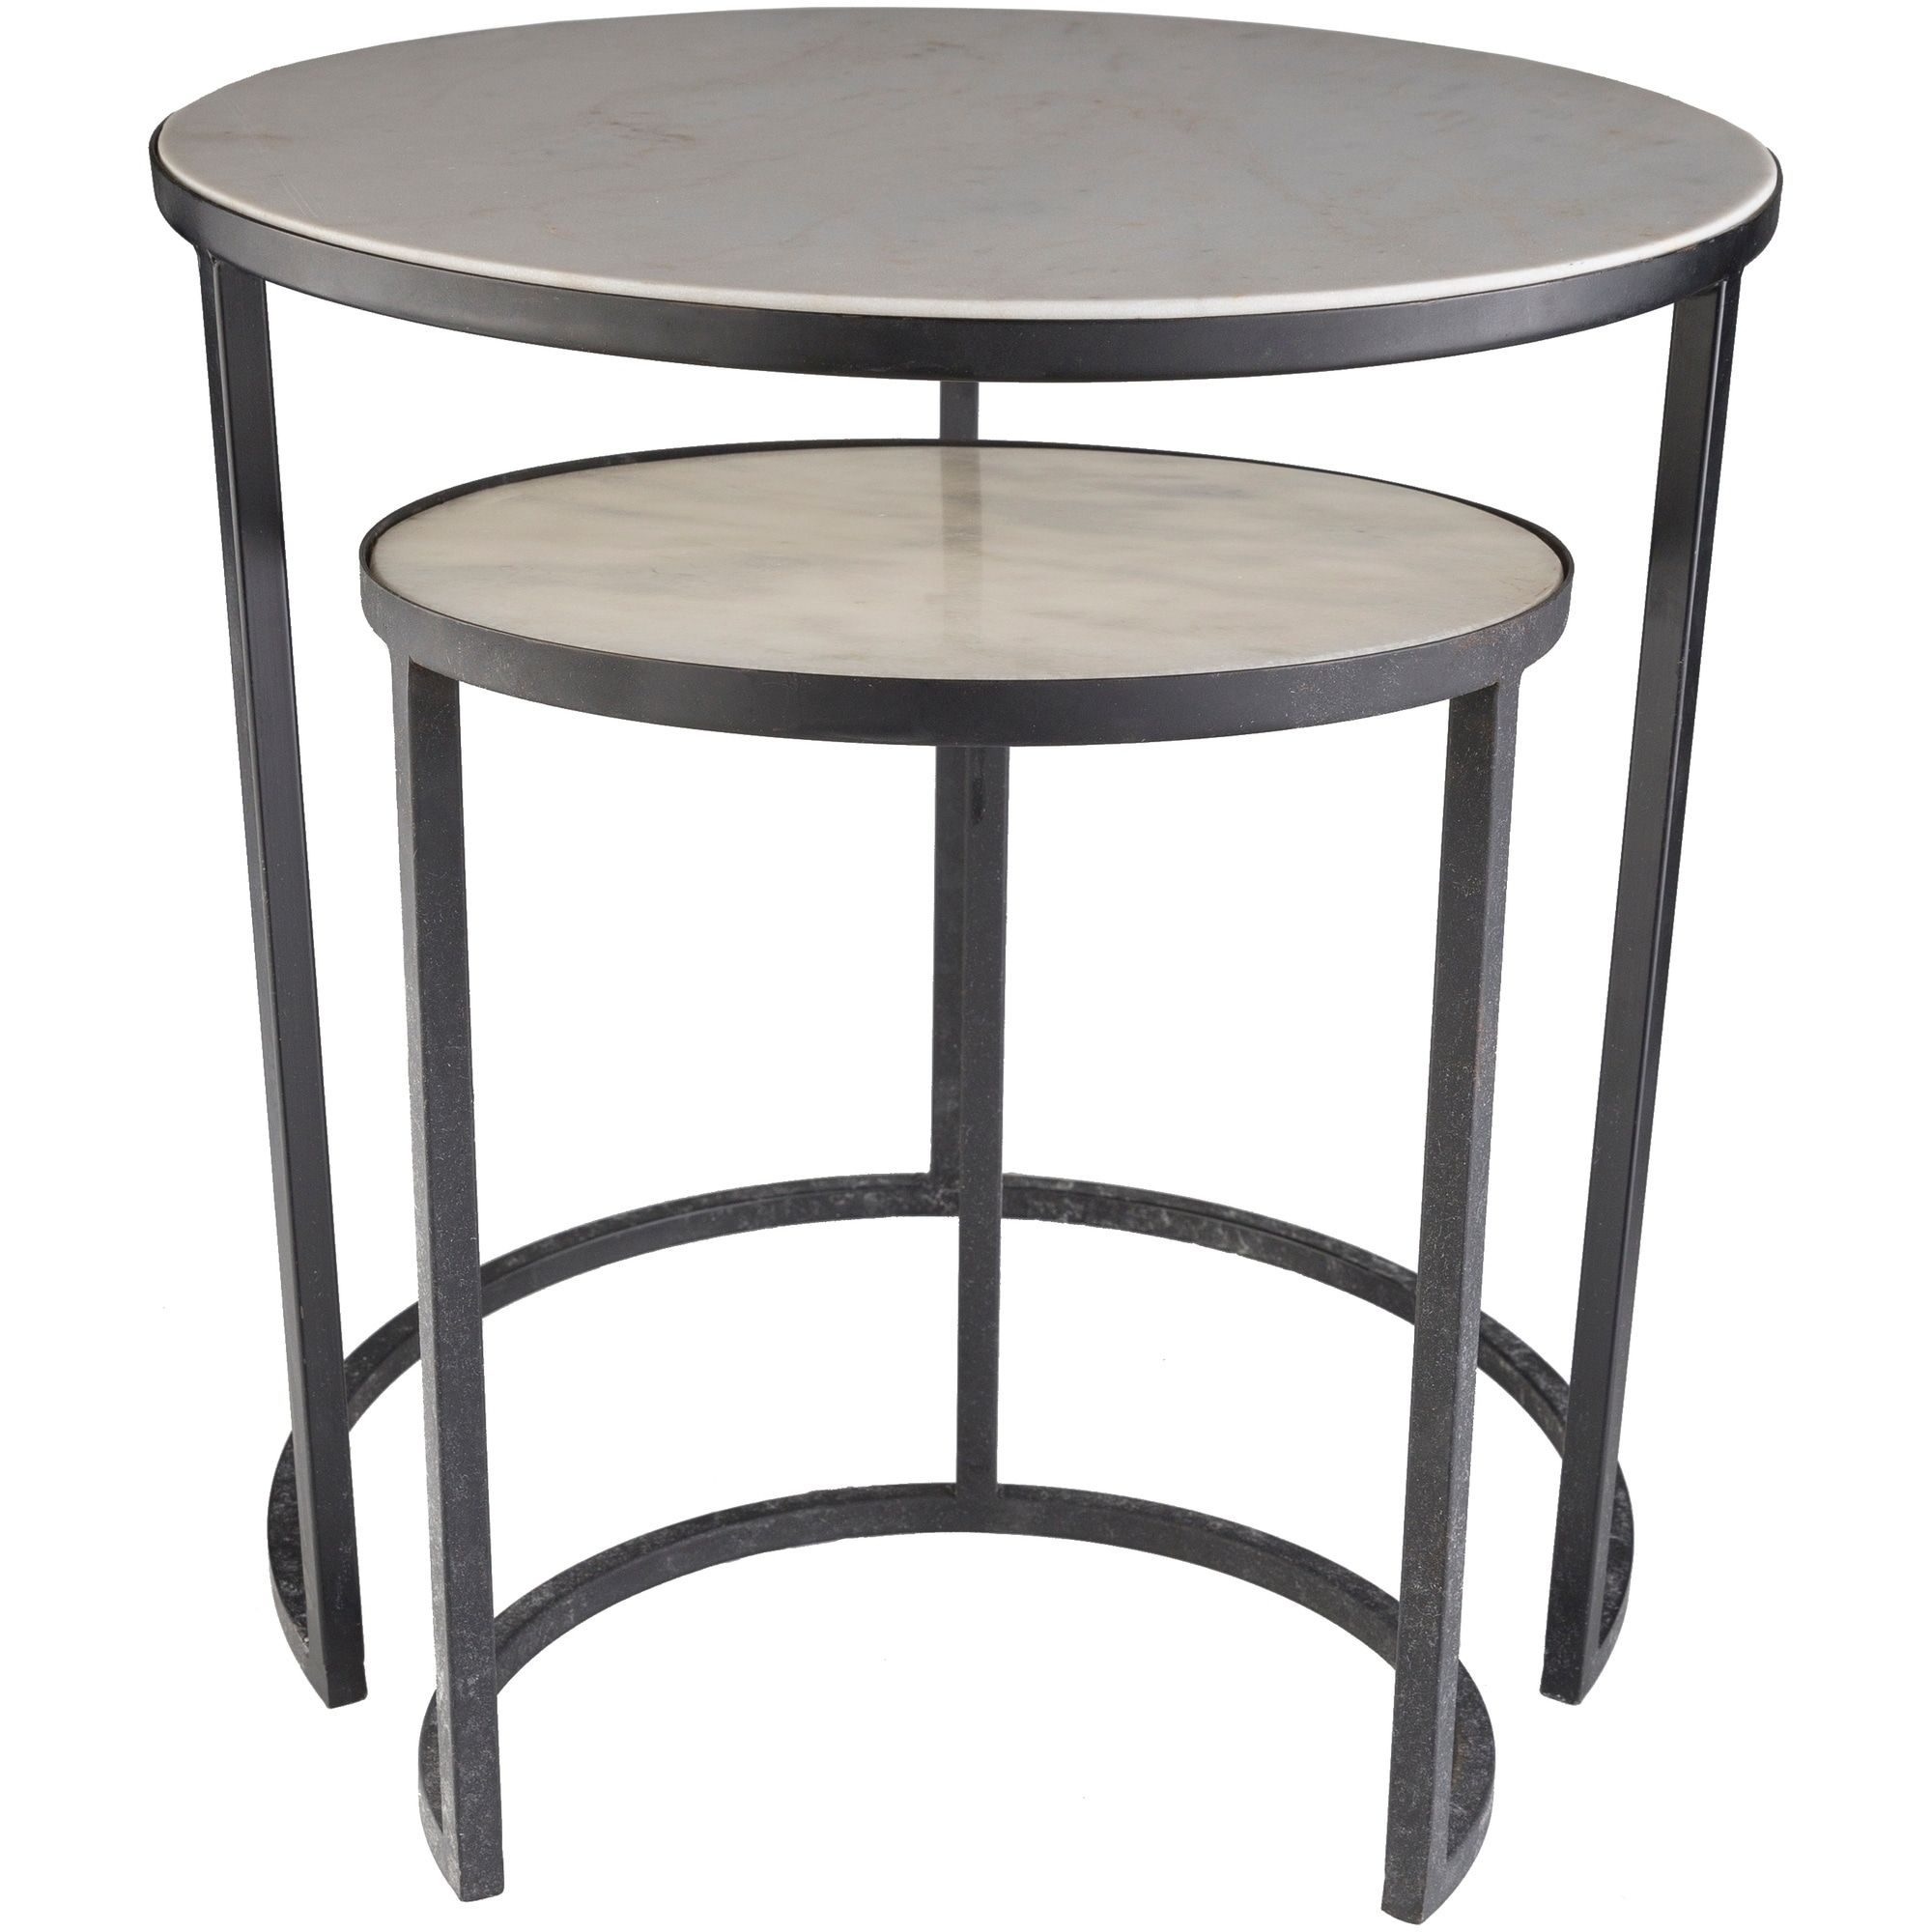 threshold metal target round killian accent faux lamp bistro small set top black wood antique marble and white table full size center design west elm off code narrow side cabinet